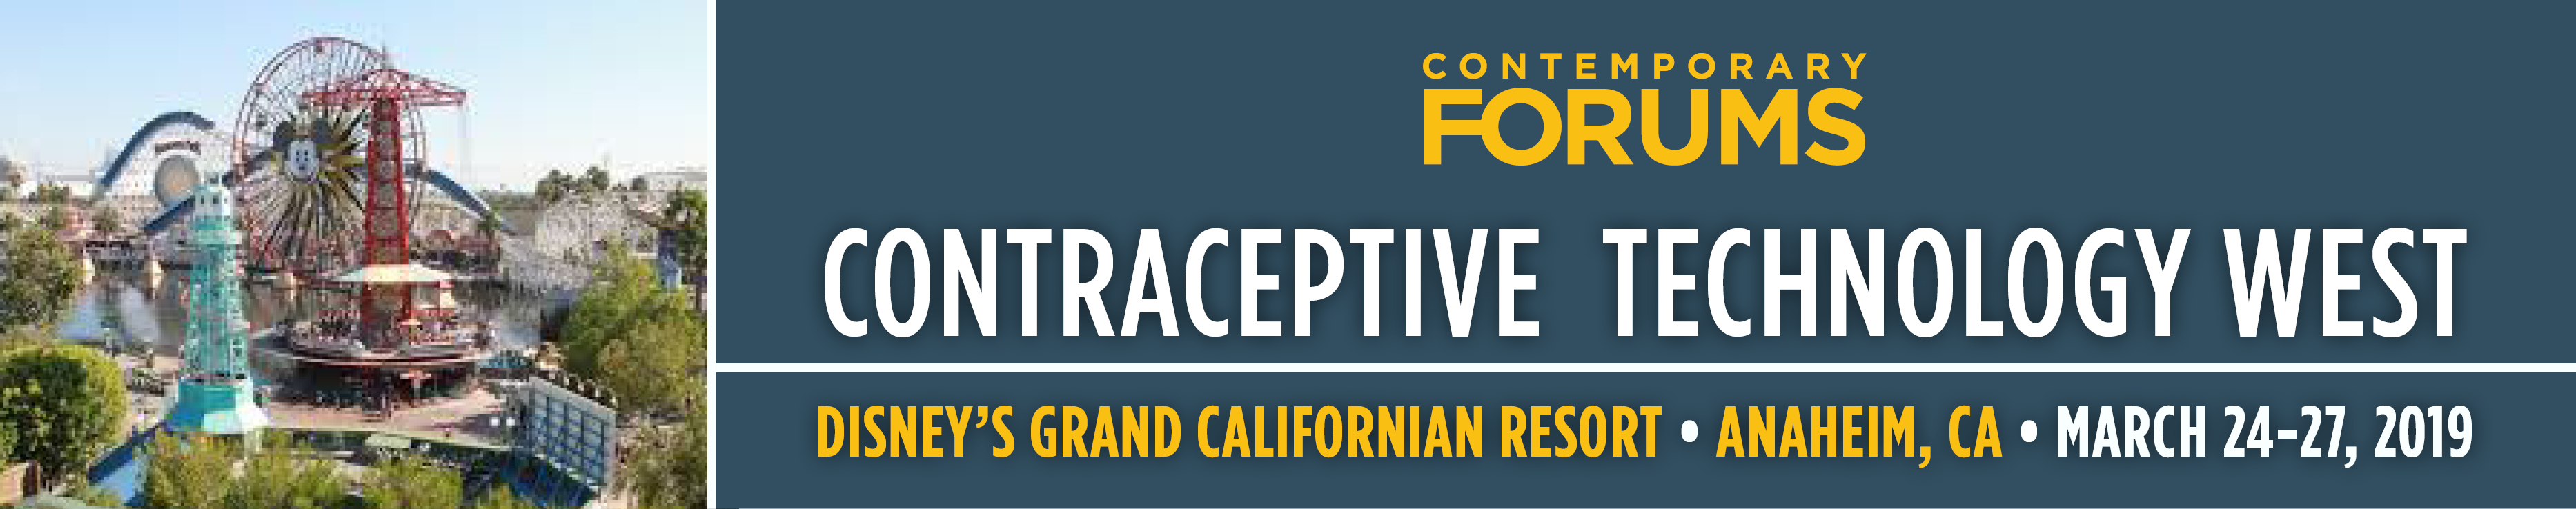 2019 Contraceptive Technology - West (March 24-27, 2019)